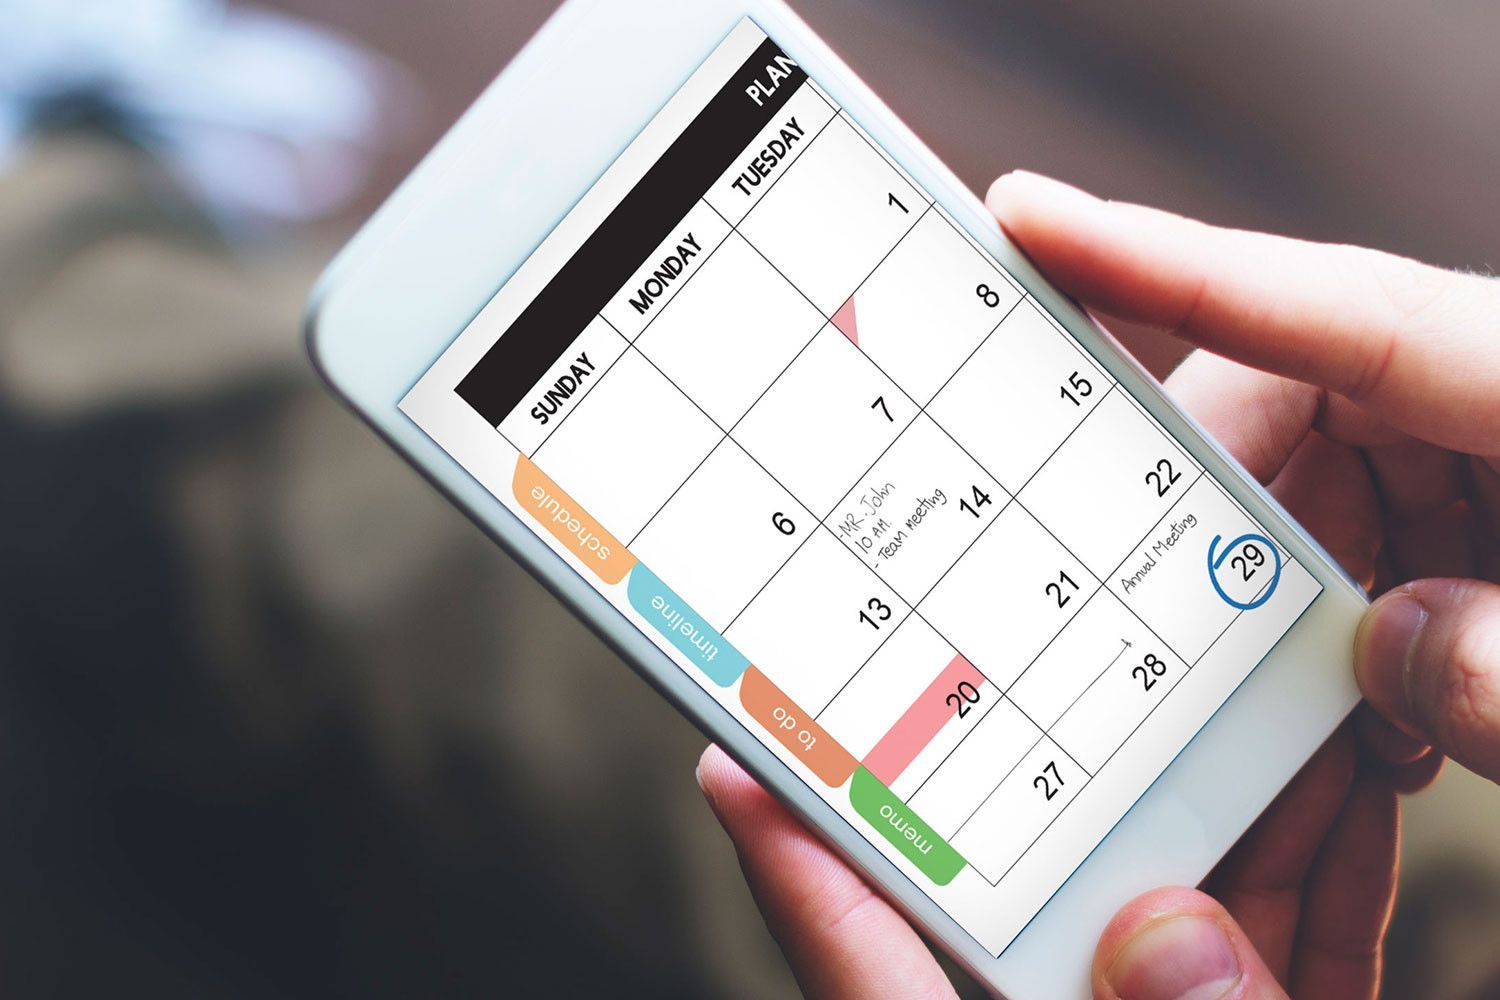 10 calendar apps for Android and iOS that will help you